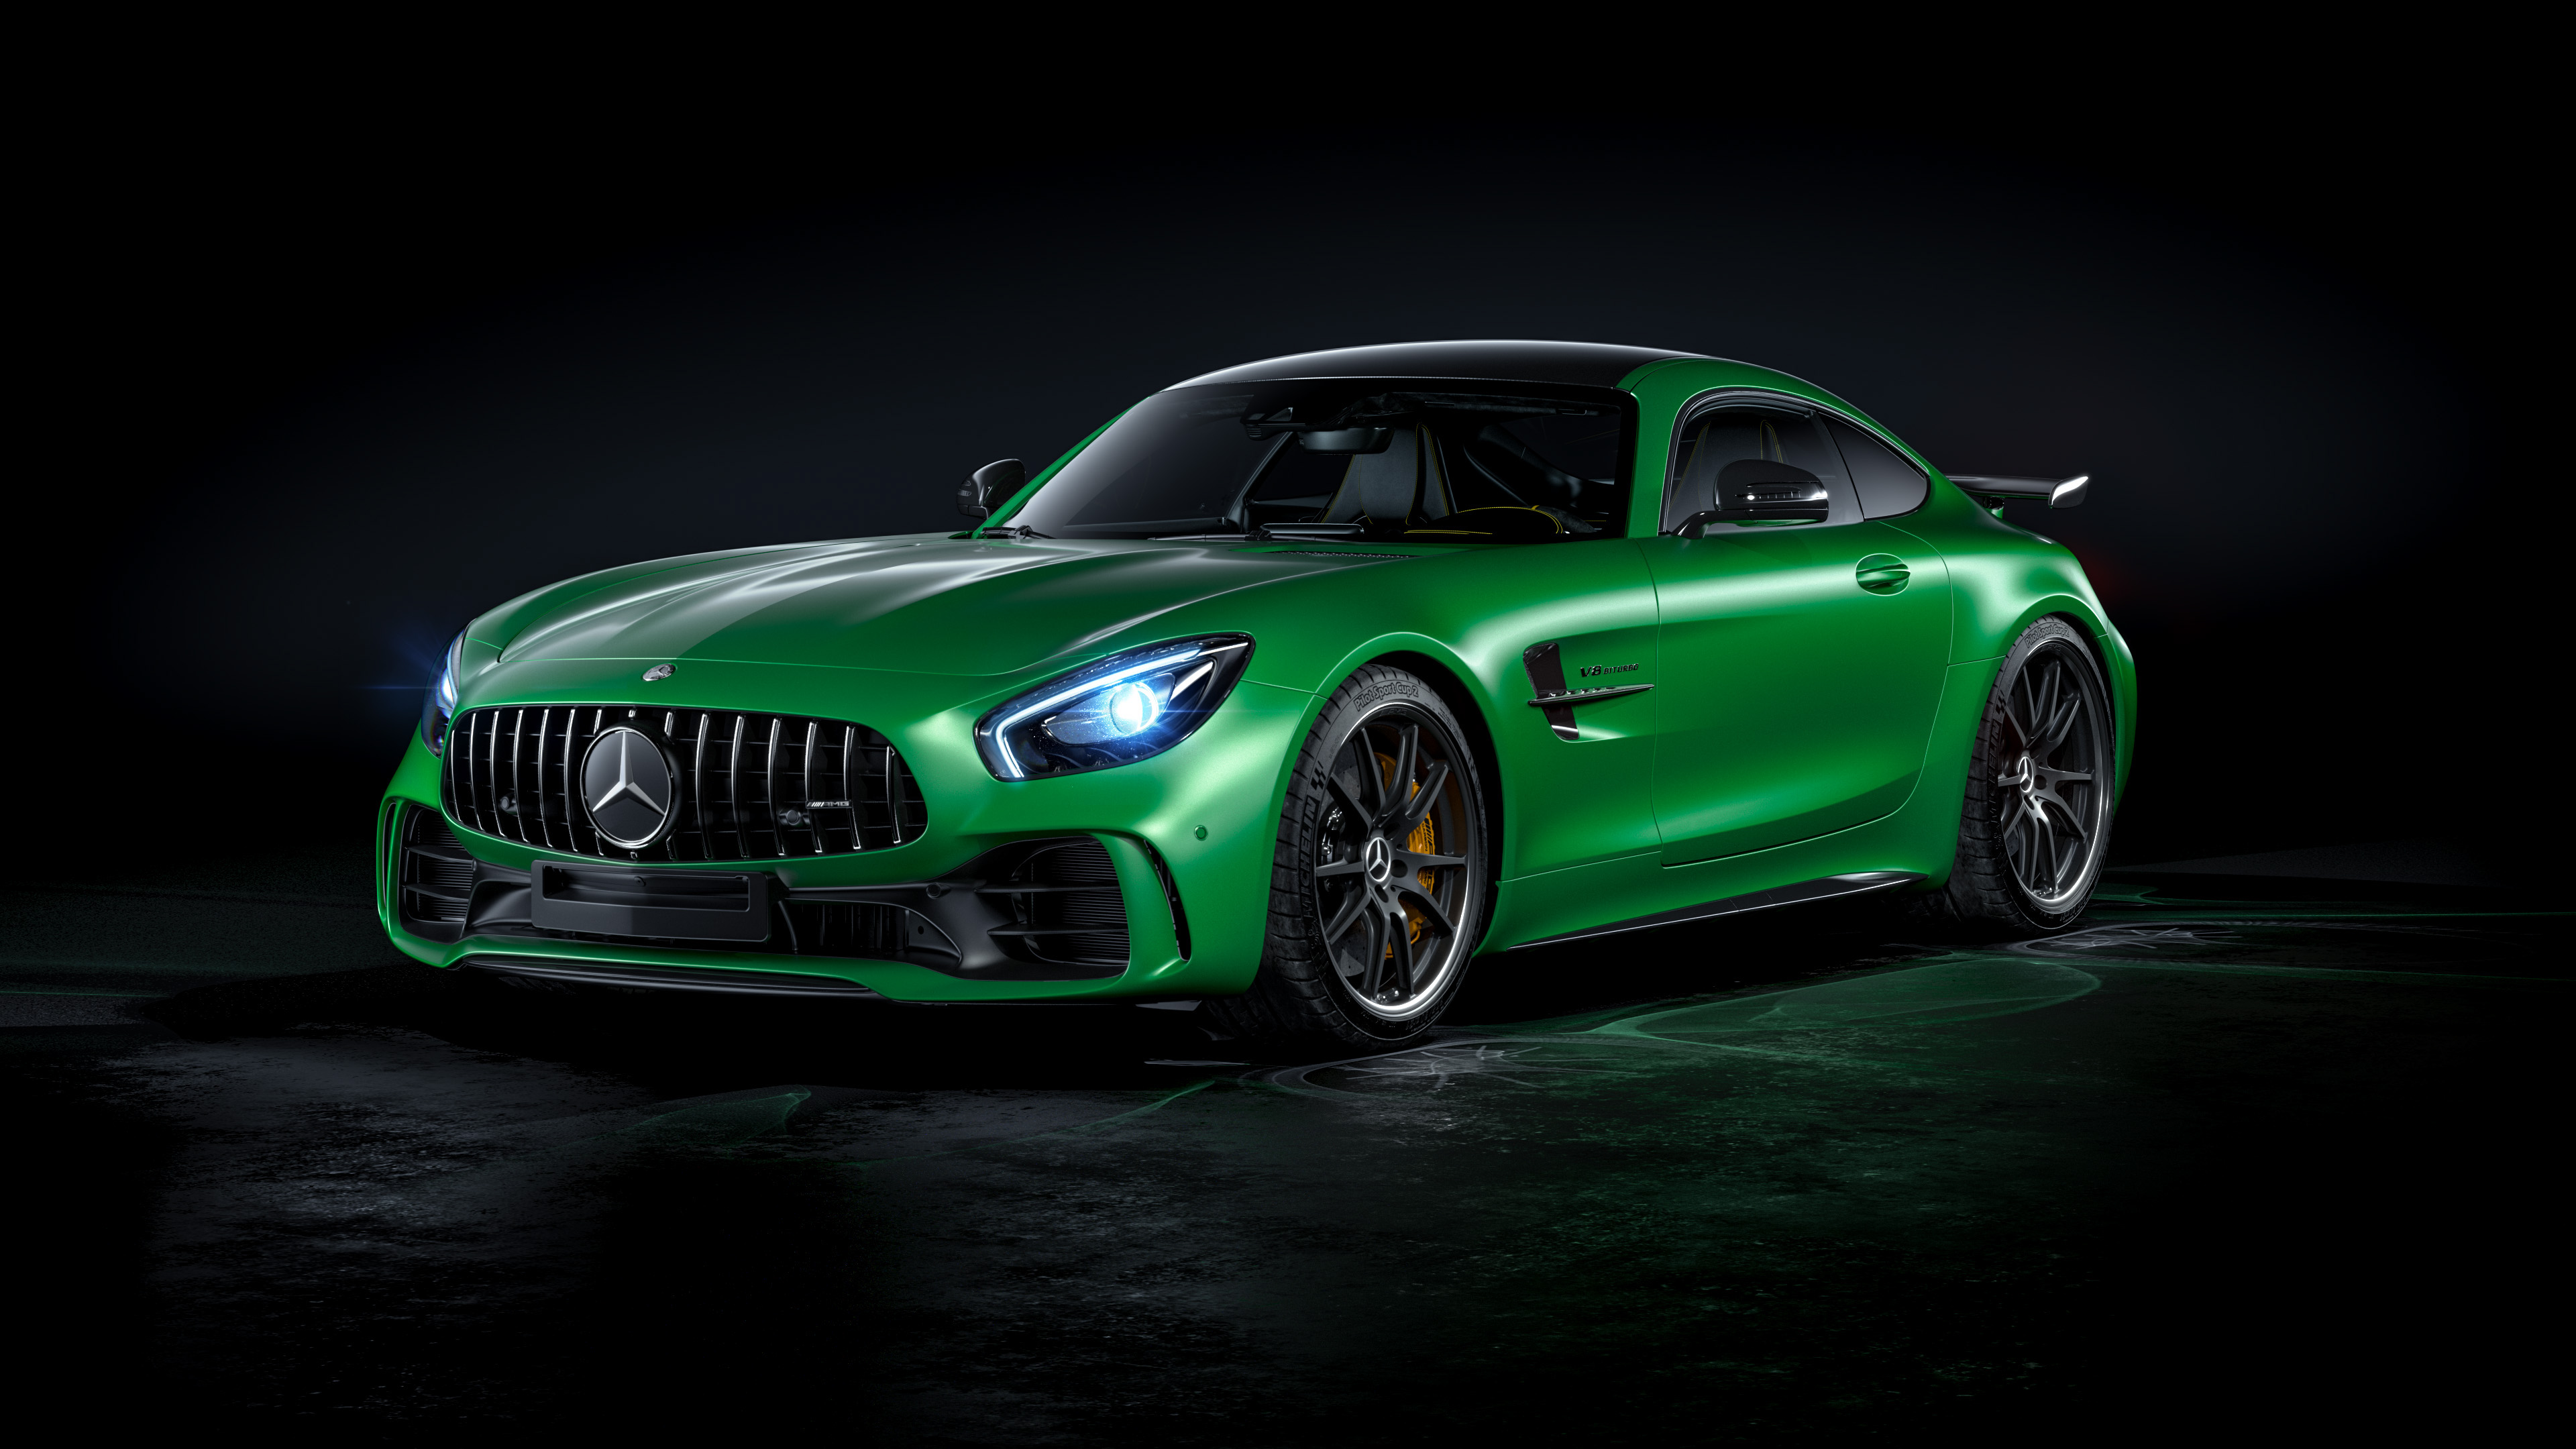 Mercedes Benz Amg Gtr 4k Hd Cars 4k Wallpapers Images